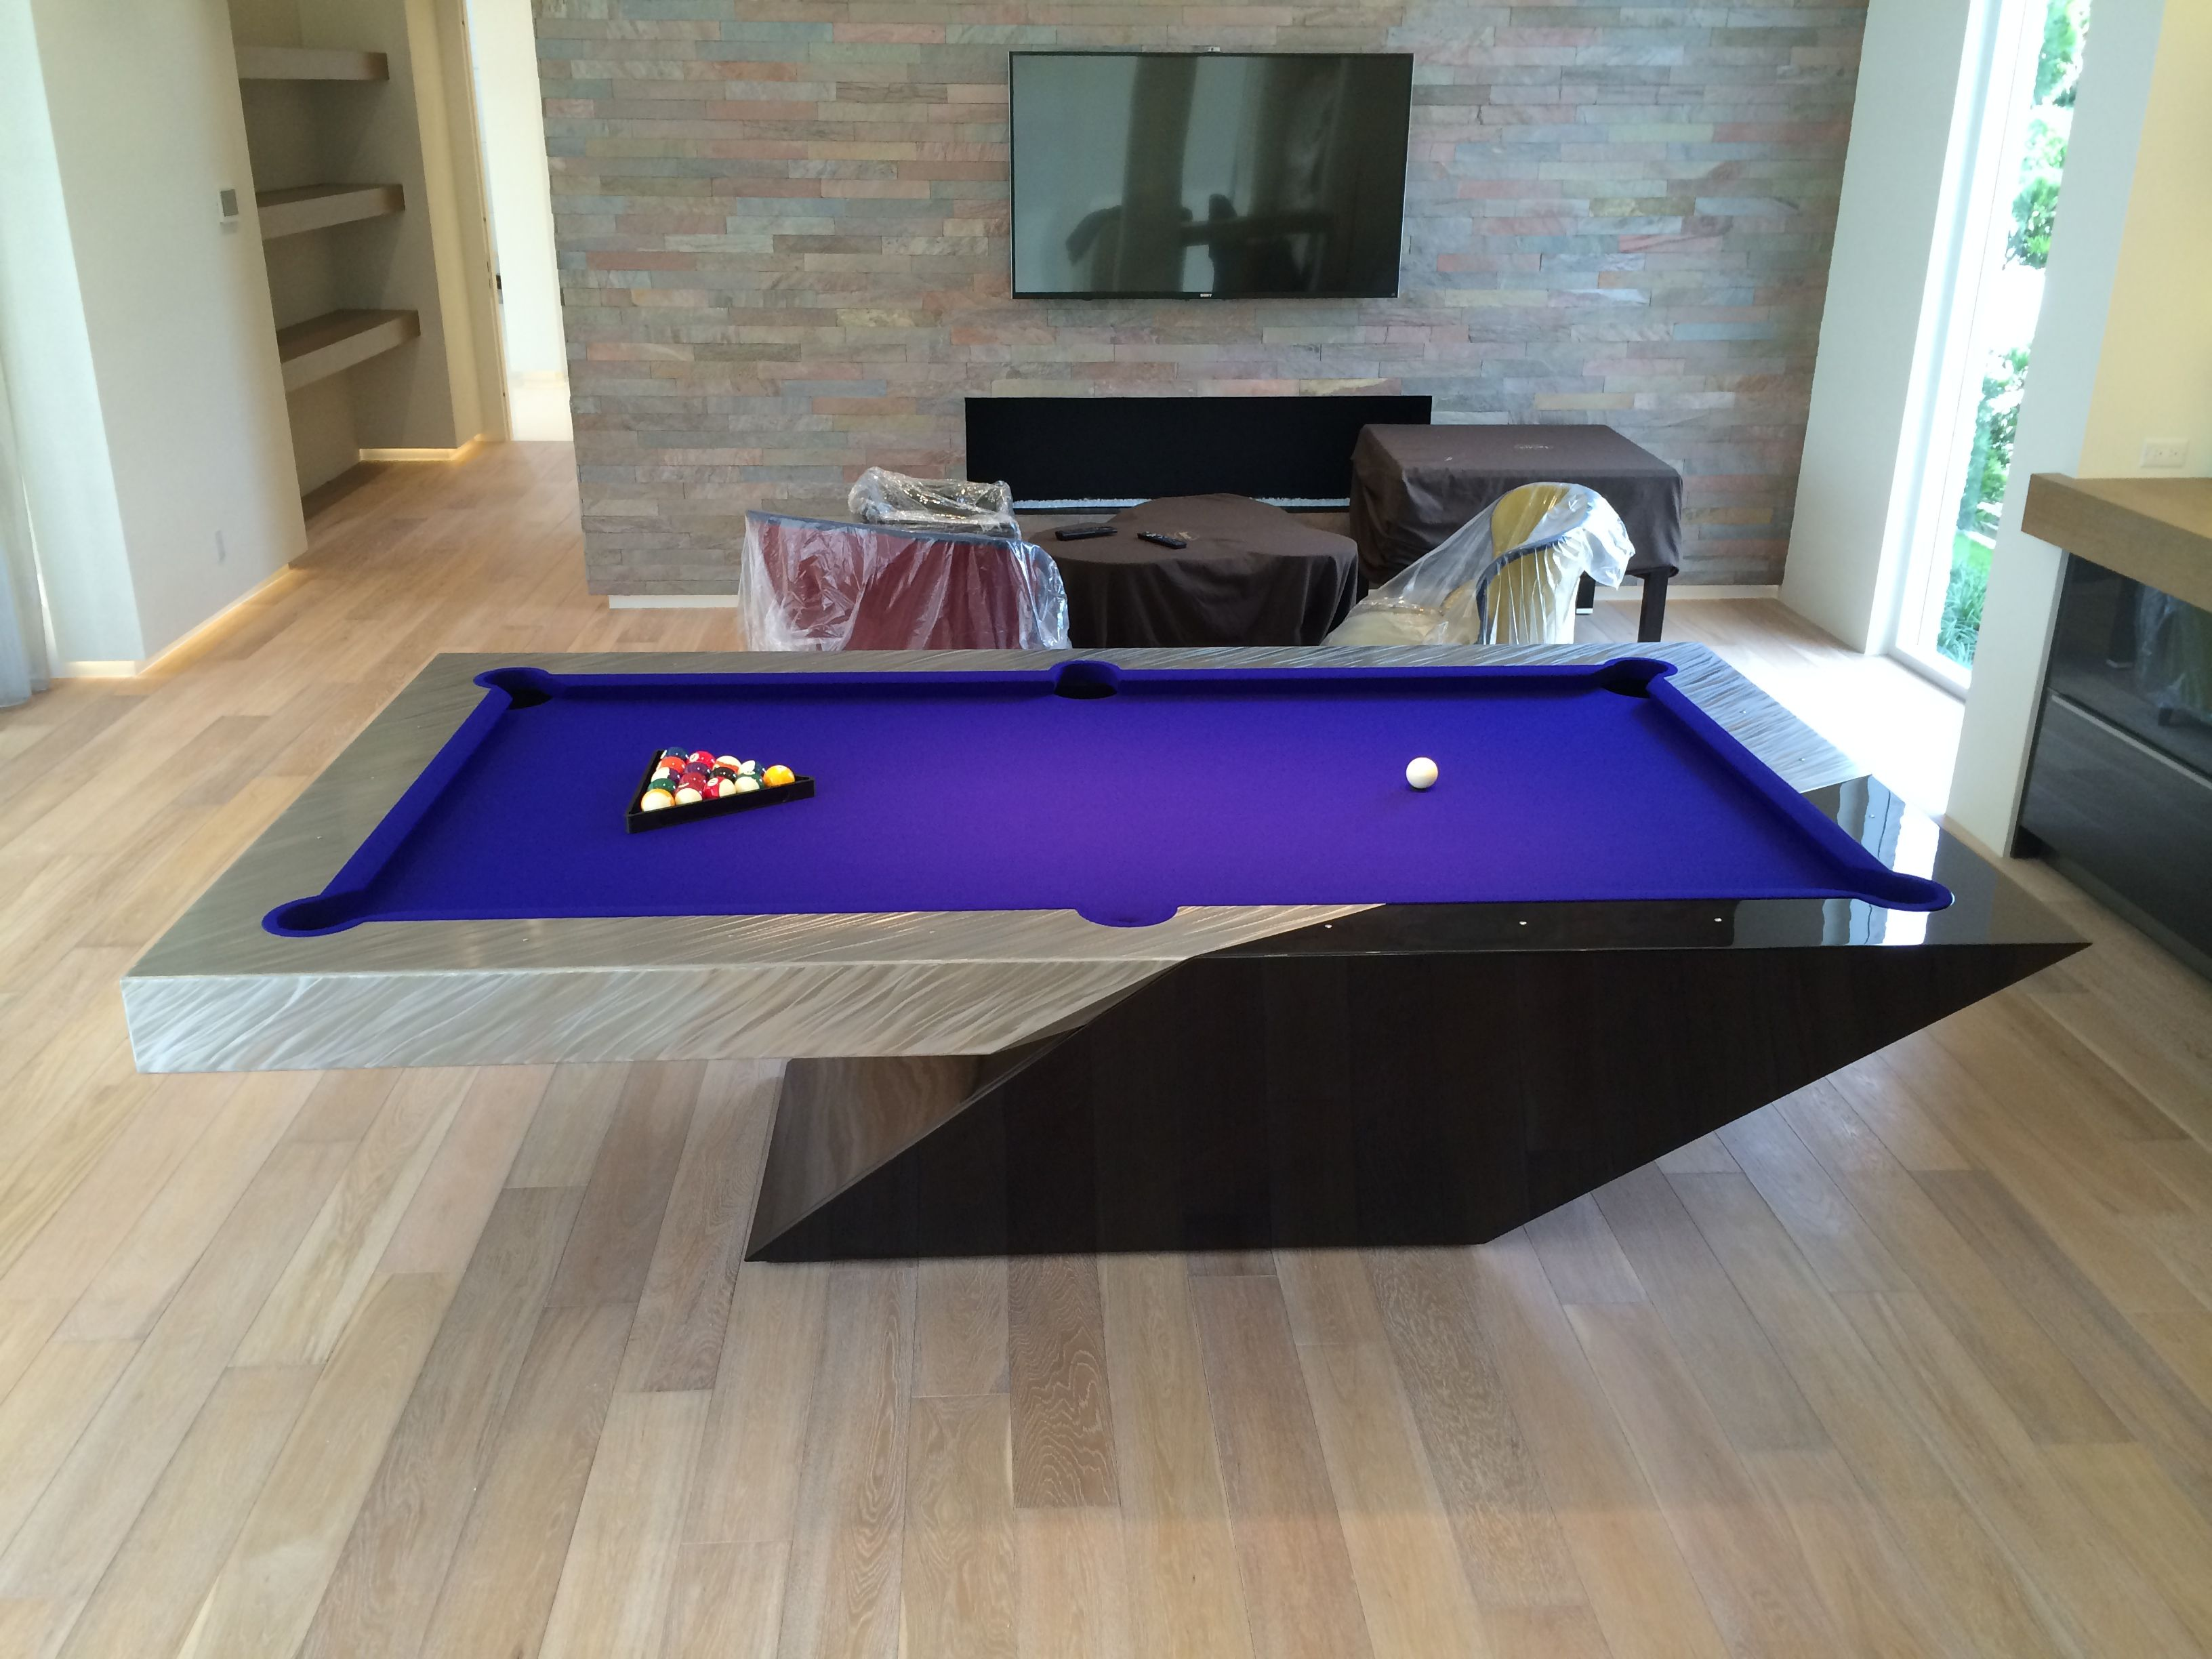 CATALINA Pool Table by MITCHELL CATALINA Pool Table by MITCHELL